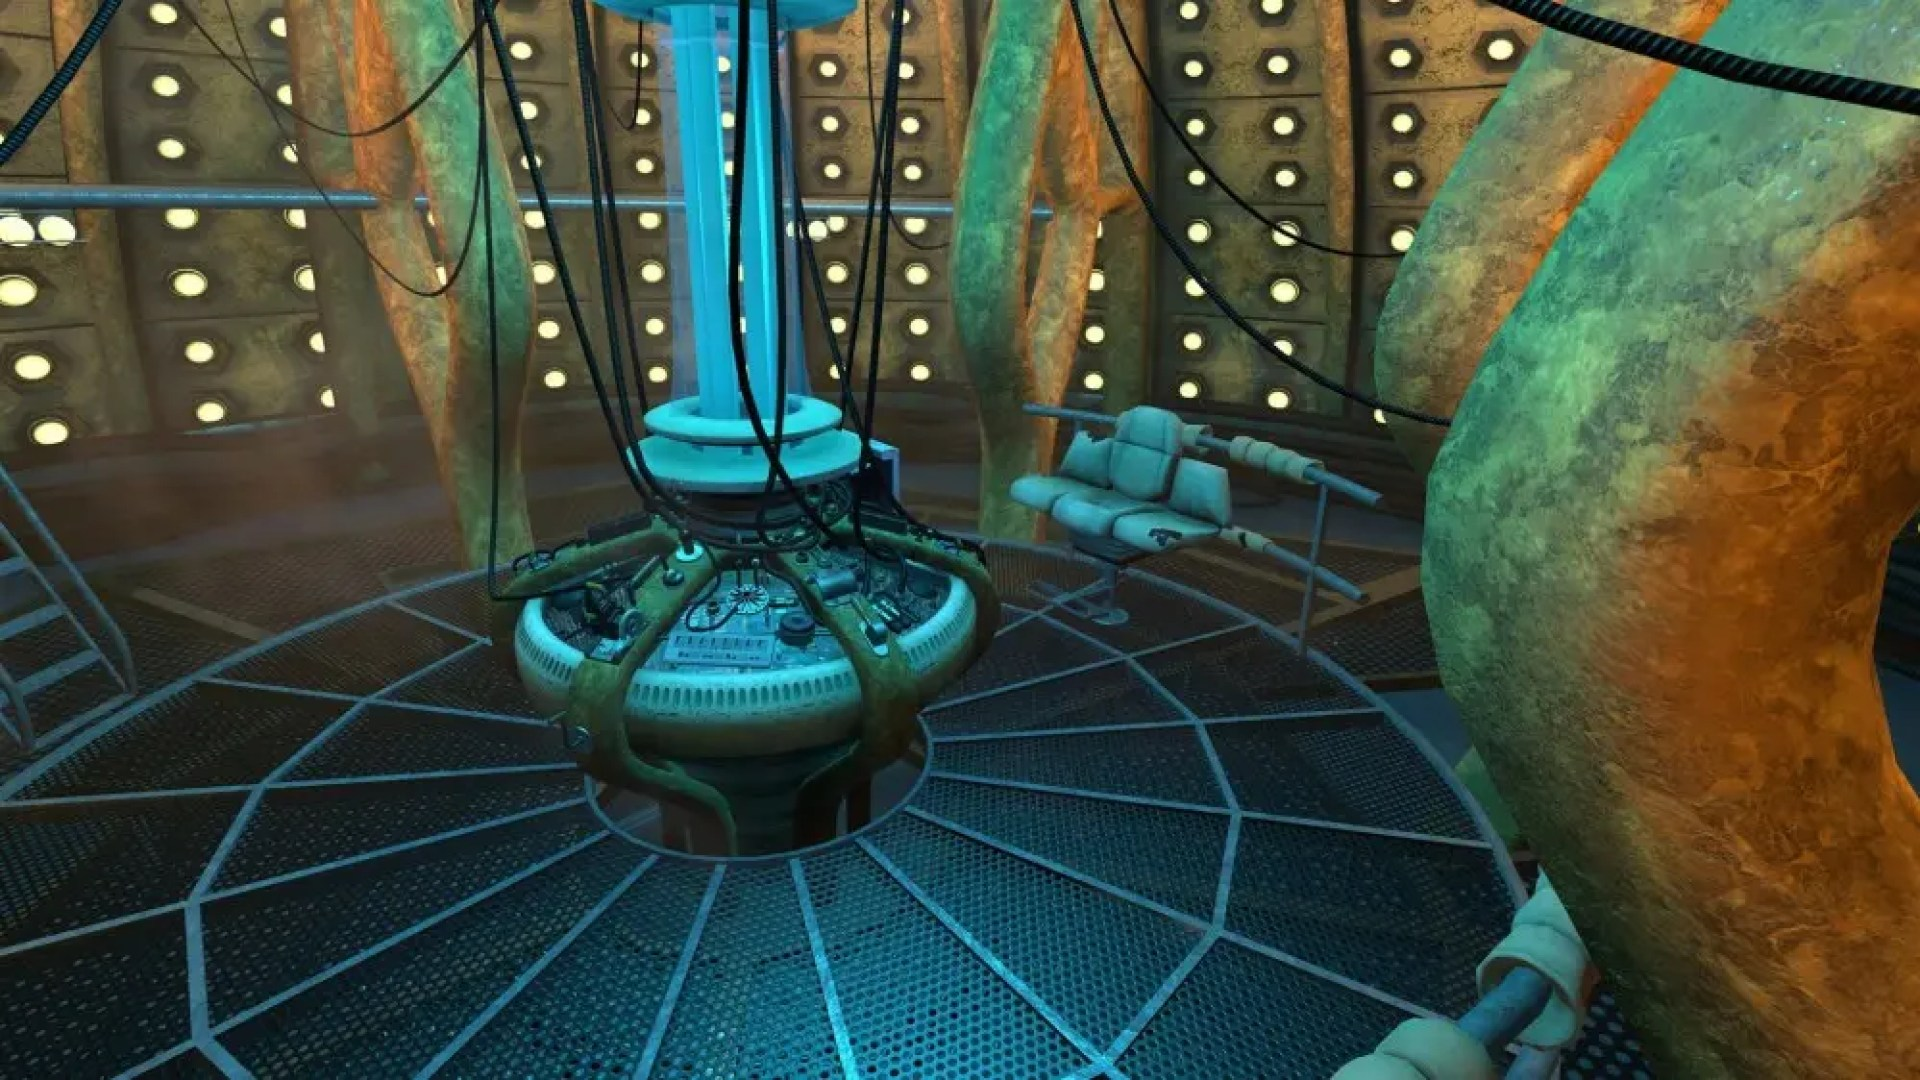 Another angle of the TARDIS interior